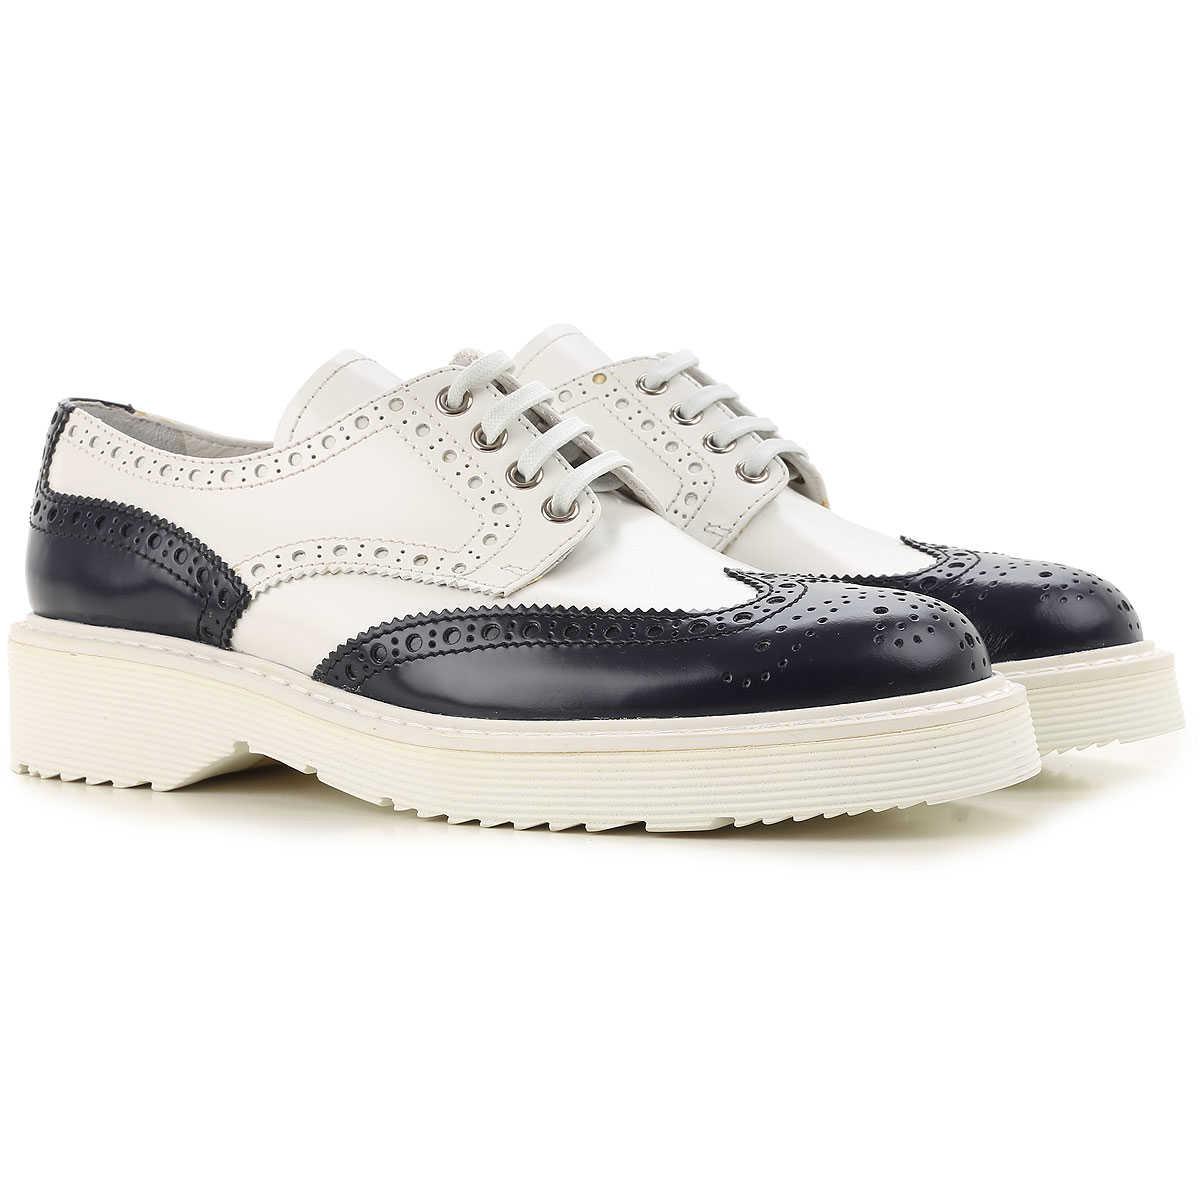 Prada Brogues Oxford Shoes On Sale in Outlet Baltic Blue SE - GOOFASH